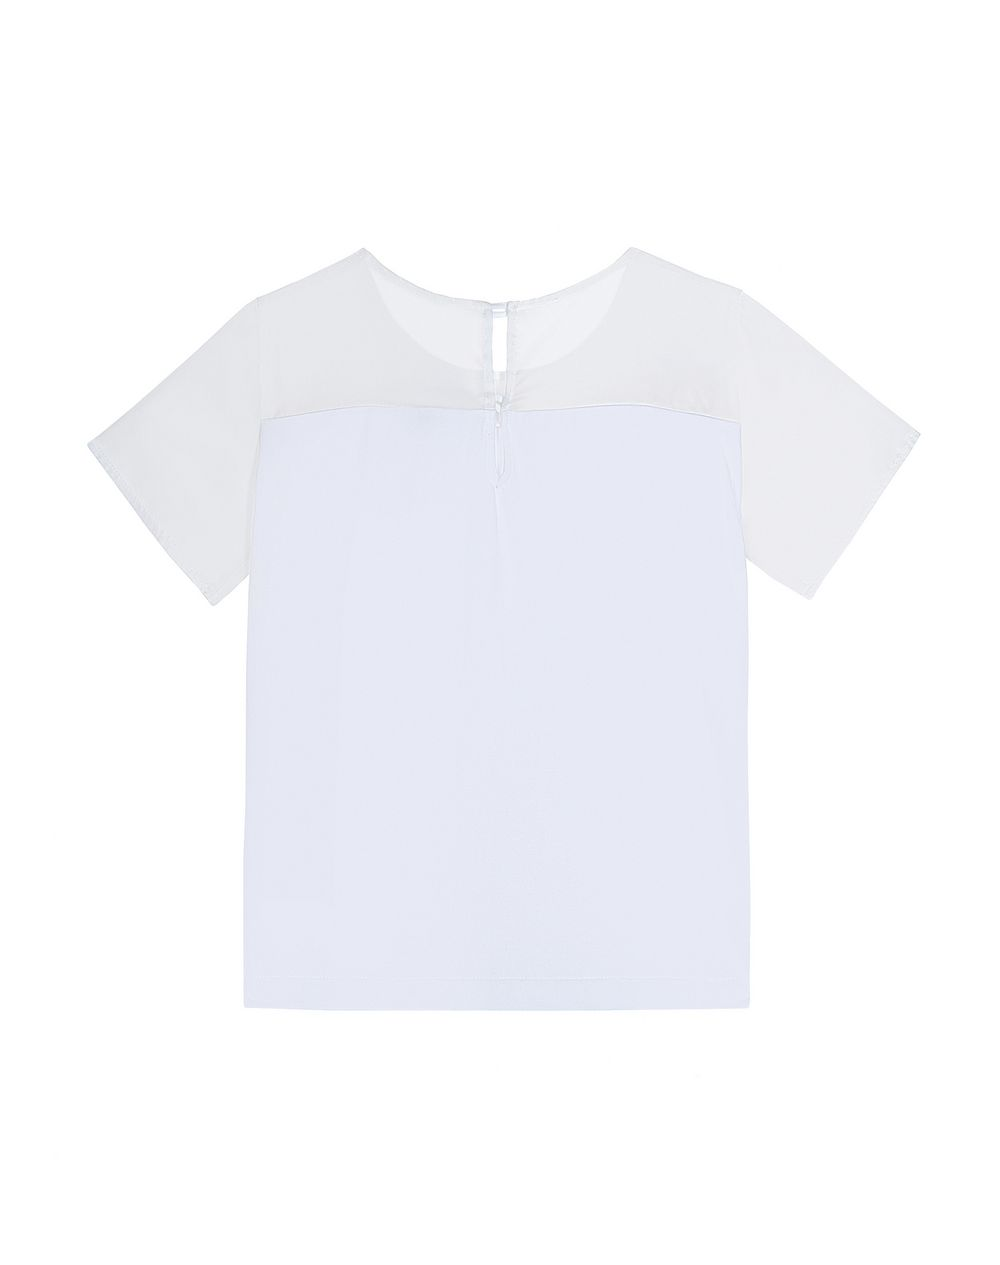 WHITE MIXED MATERIAL T-SHIRT   - Lanvin